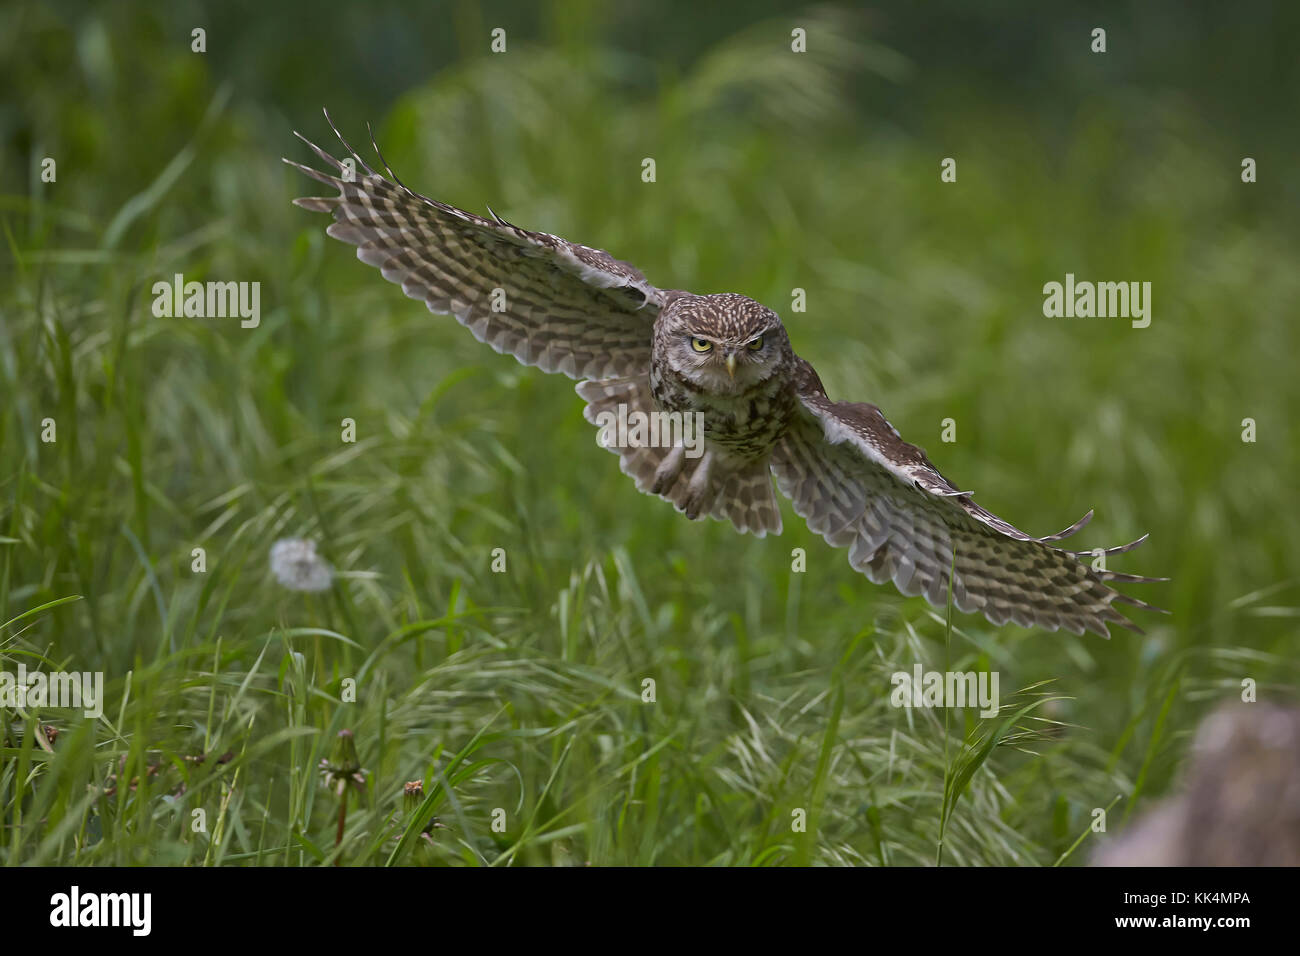 Little Owl, Athene noctua, in flight, East Yorkshire, England, UK, introduced to Britain 19th century, partly diurnal. - Stock Image